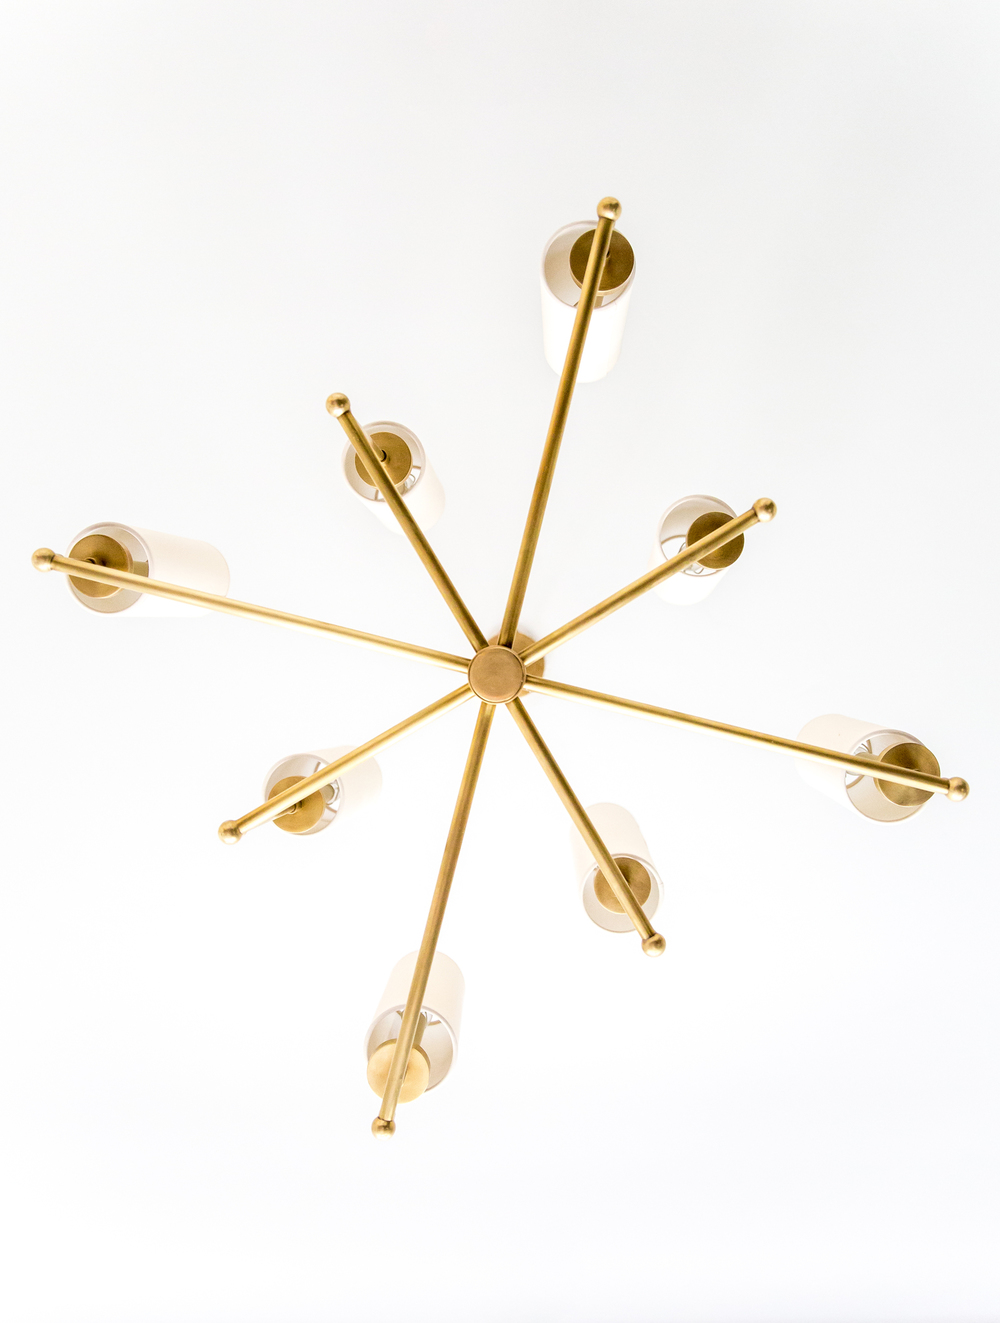 Modern, gold metal chandelier in office